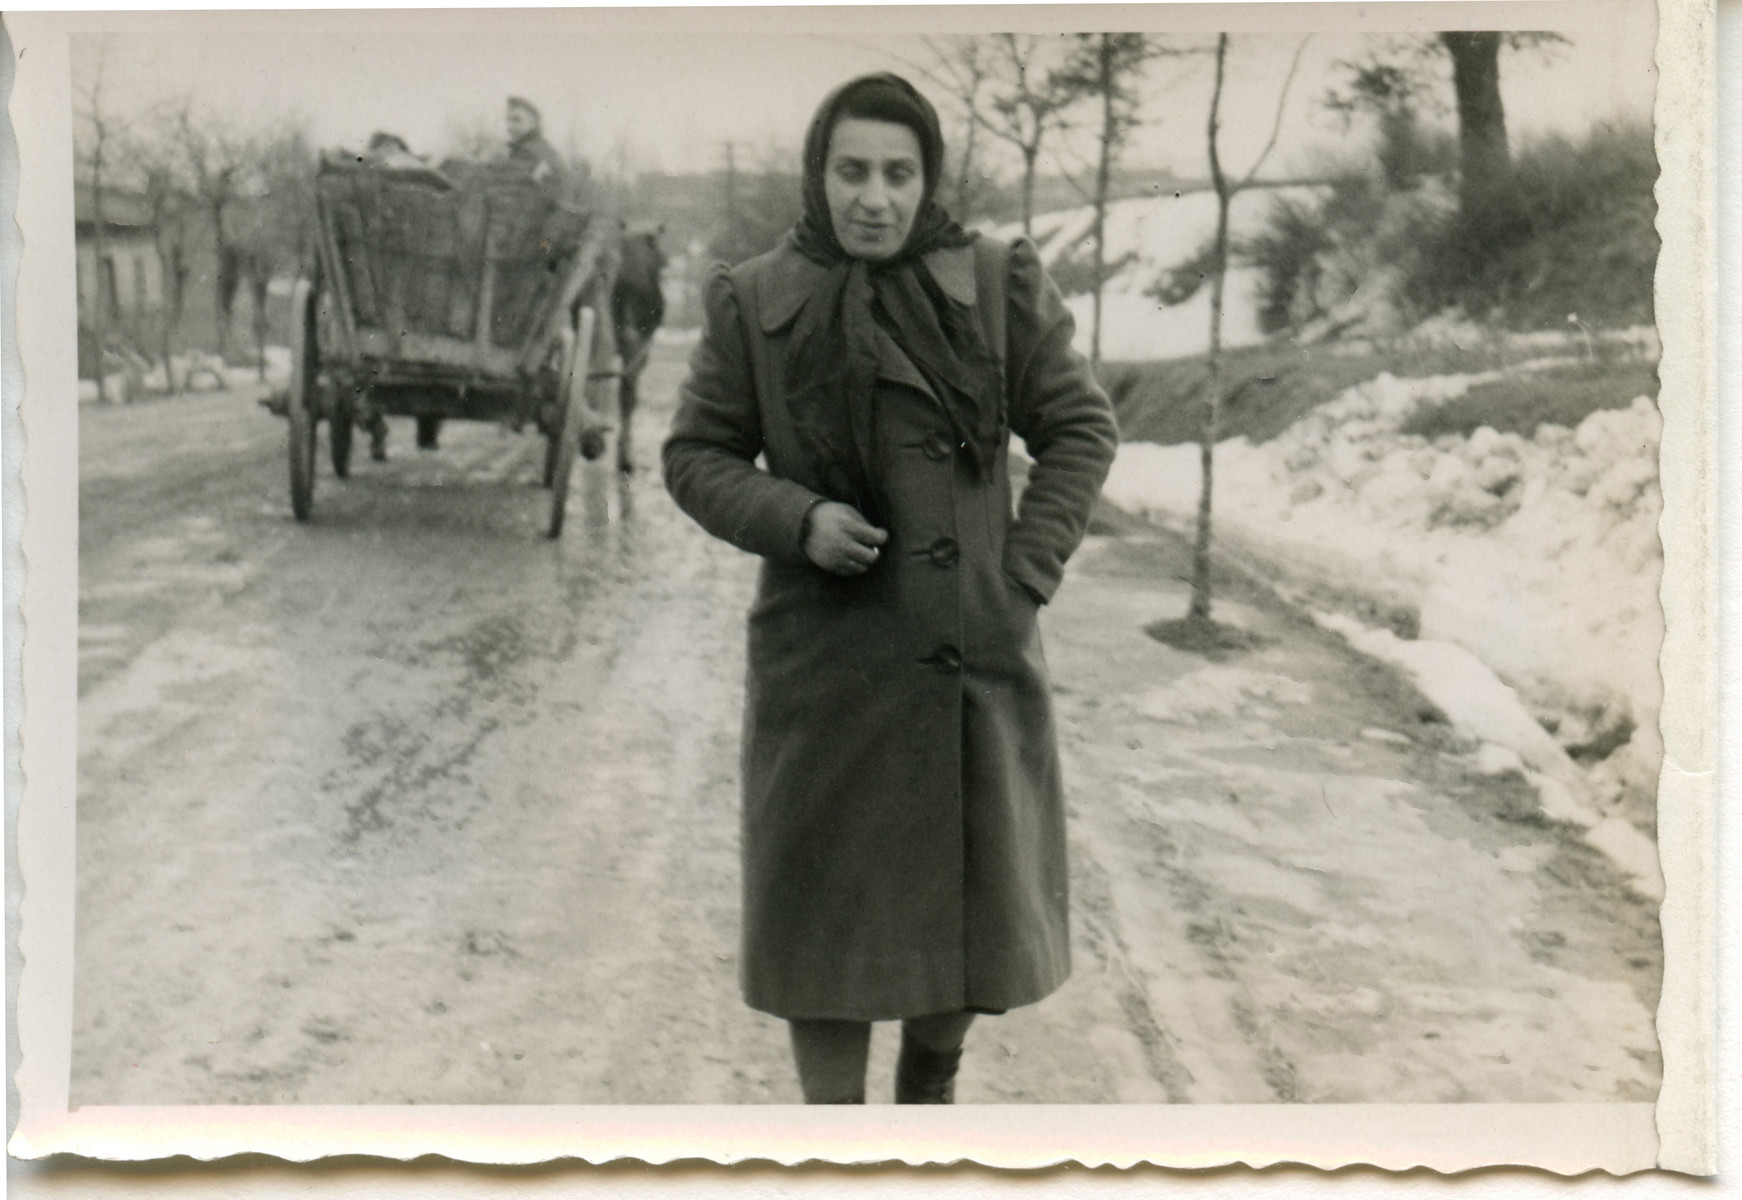 A woman walks down a snowy road [perhaps in Osieciny].